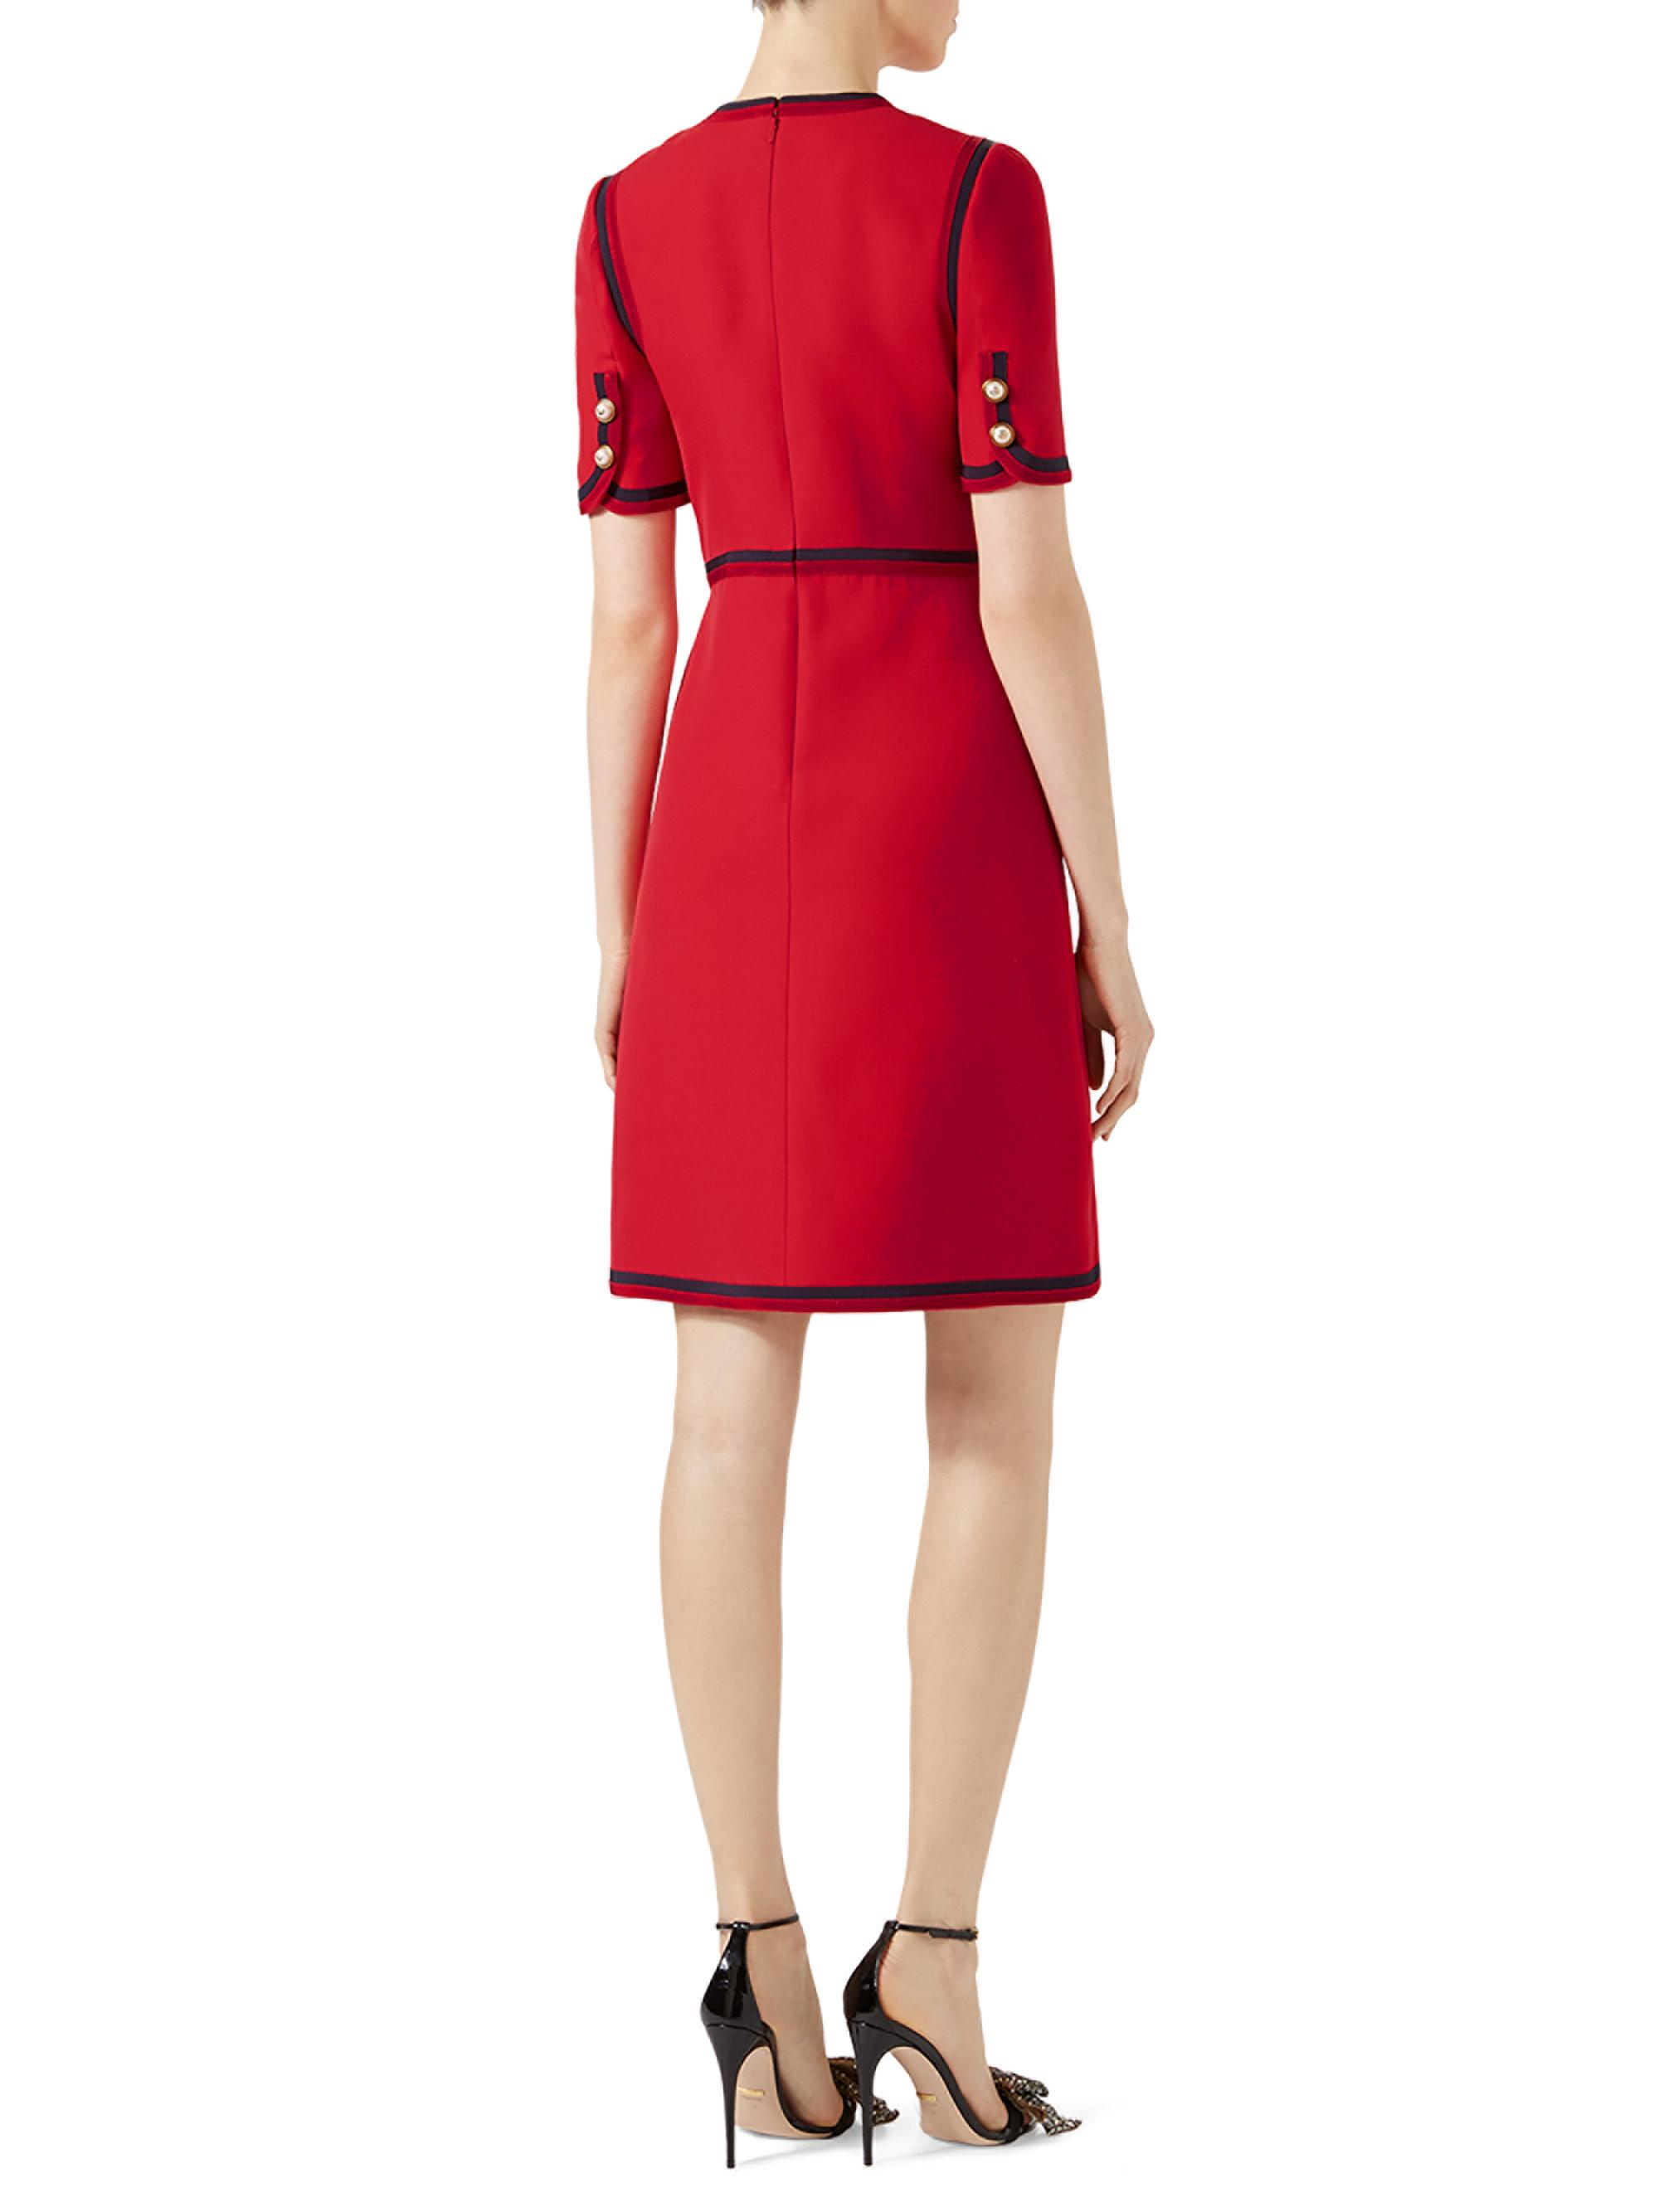 52cc5a0d2e8781 Gucci Cady Pearl Button Wool & Silk Dress in Red - Lyst